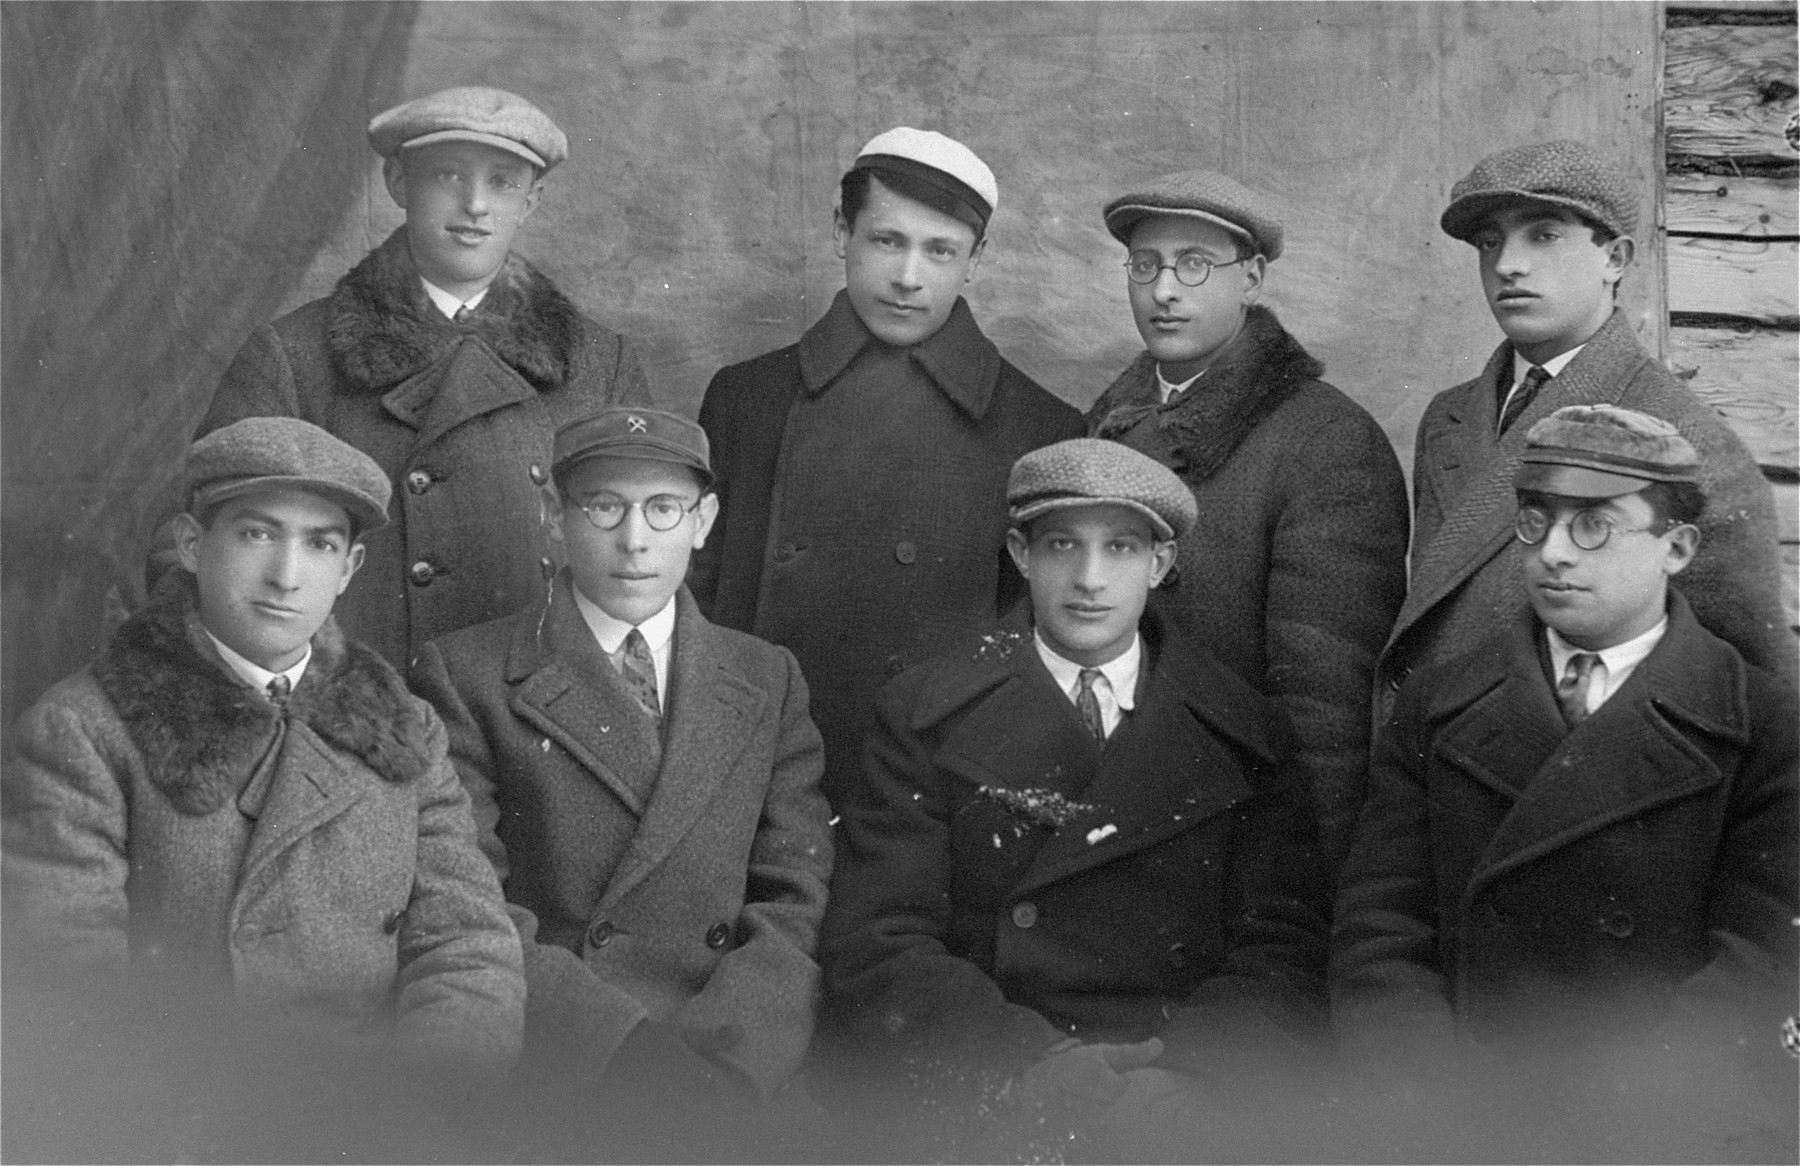 Group portrait of young Jewish men in Lithuania. Pictured at the top right is the donor's father, Eliezer Kaplan.